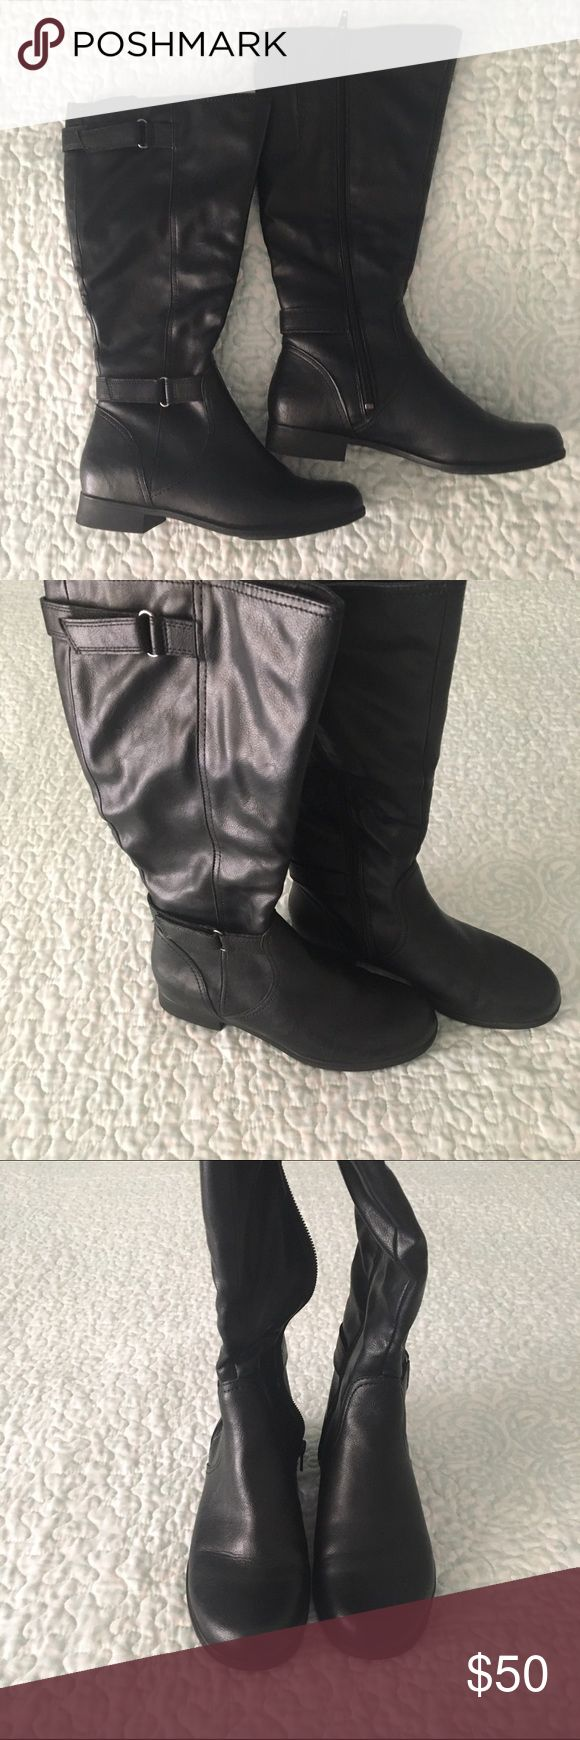 Hush Puppies boots Brand new! Still have original 📦. Purchased from Macy's in 2013. Comfortable, buckle detail, classic. Hits below the knee. Offers welcome! Price negotiable. Perfect for autumn 🍂 and winter ❄️. Mid-calf, 14 inch circumference. Hush Puppies Shoes Winter & Rain Boots